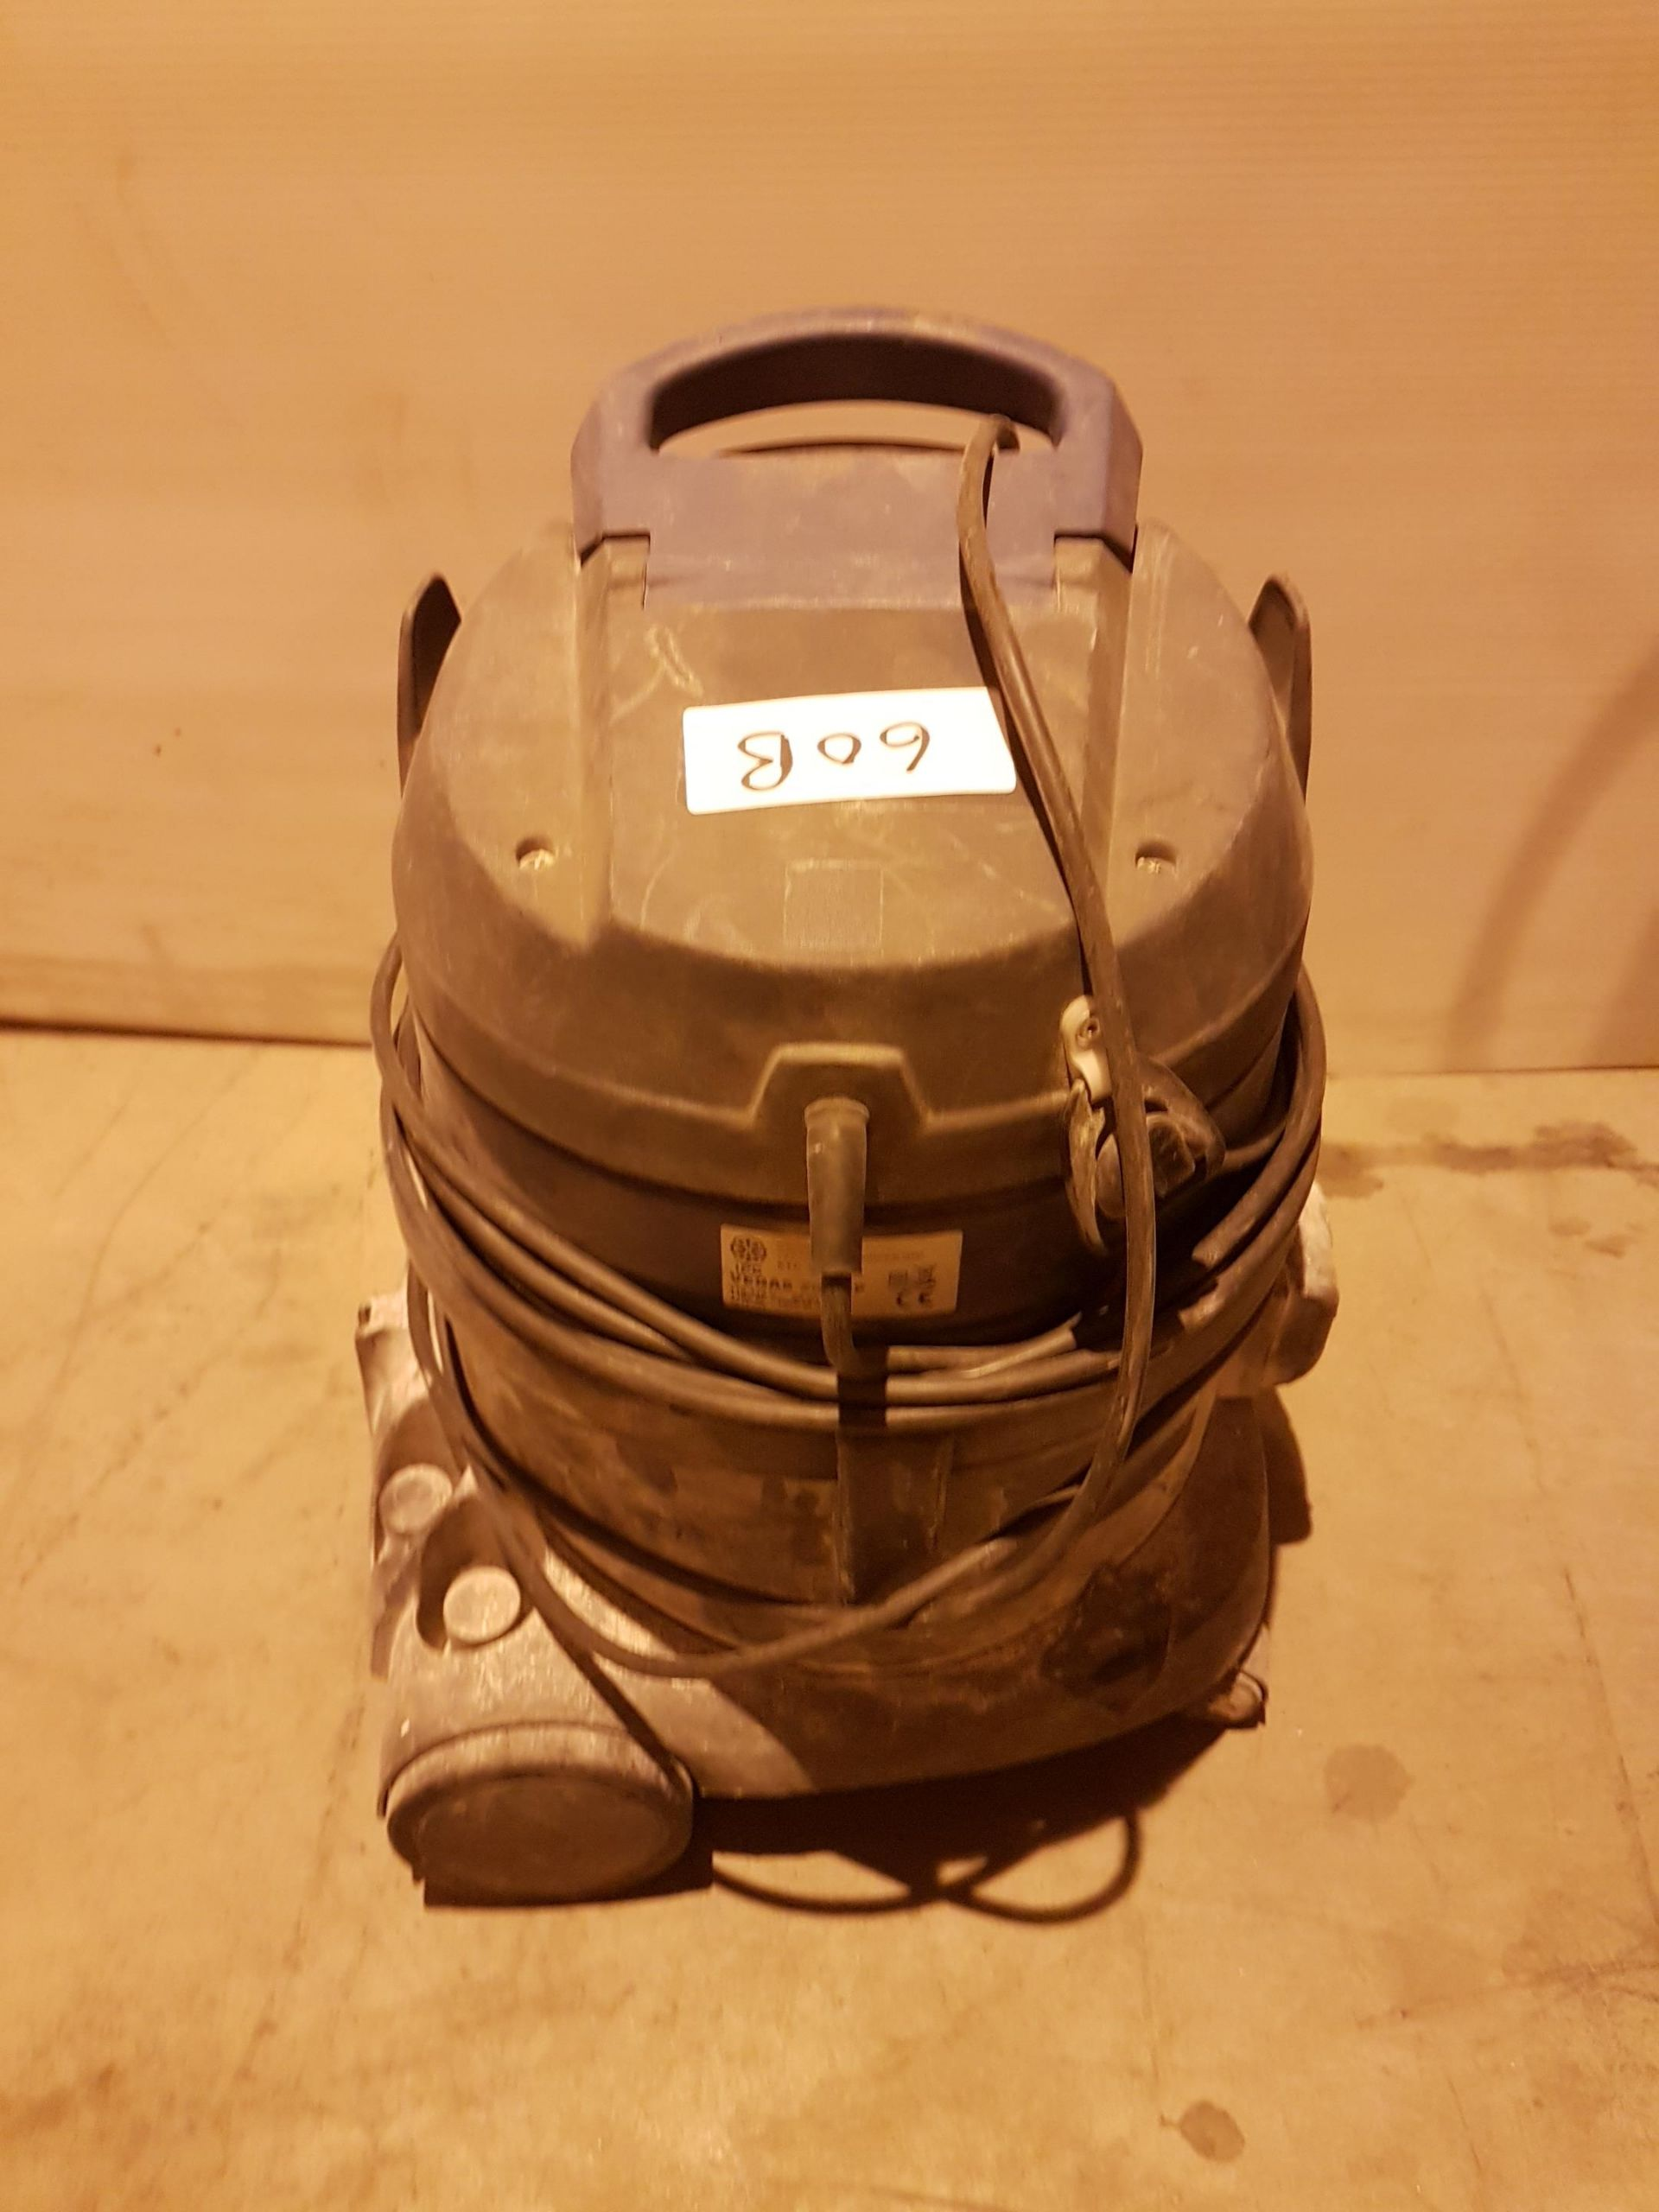 Lot 60 - IPC Vegas 202 HP Light Duty Vacuum 110v stcw7610, working